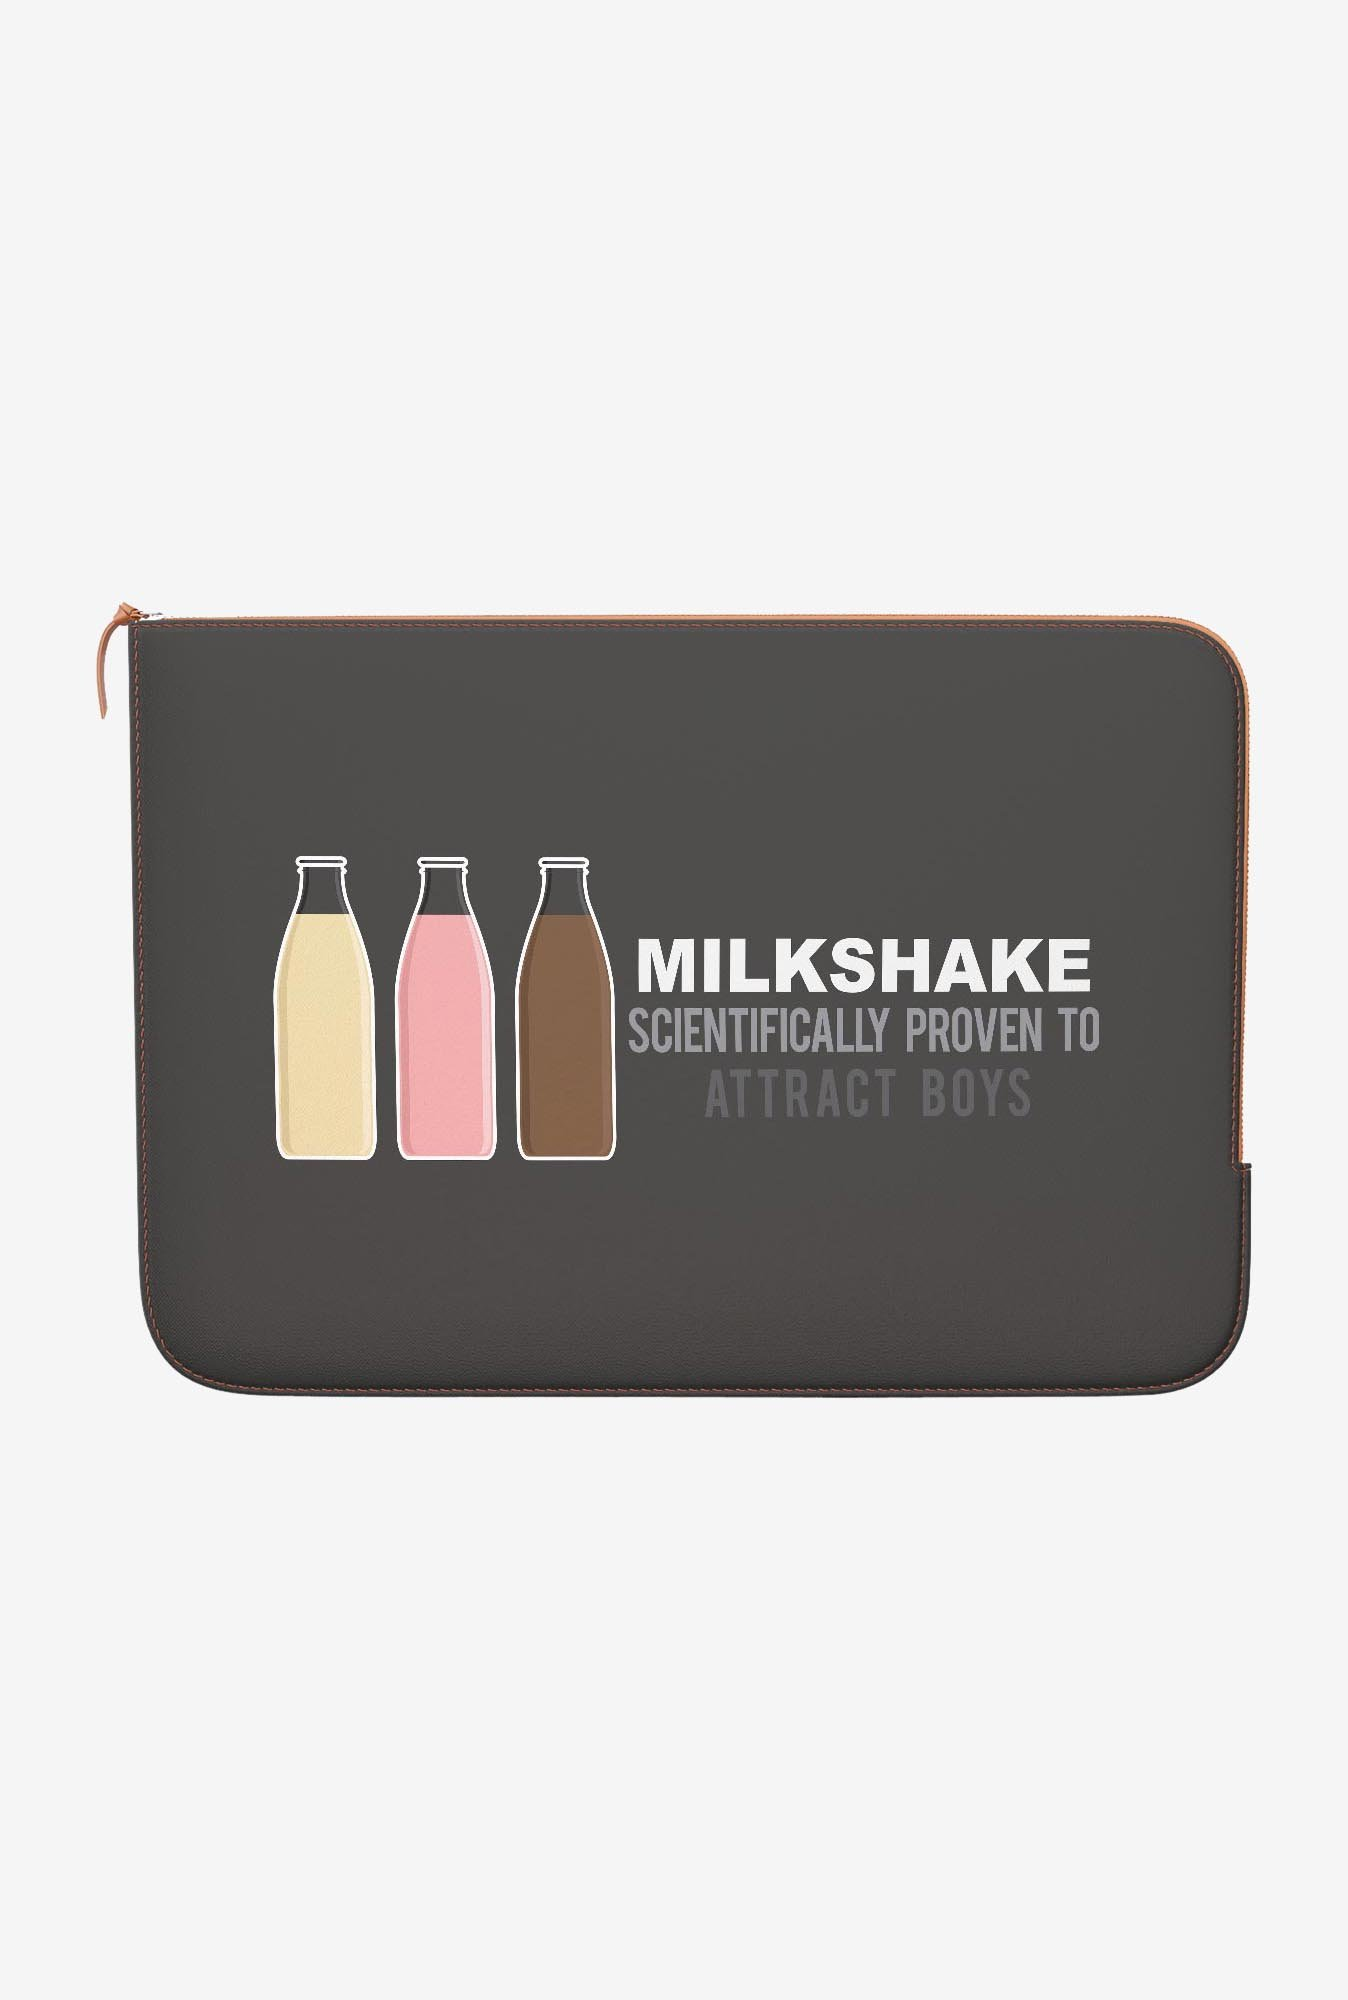 DailyObjects Milkshake MacBook Air 11 Zippered Sleeve